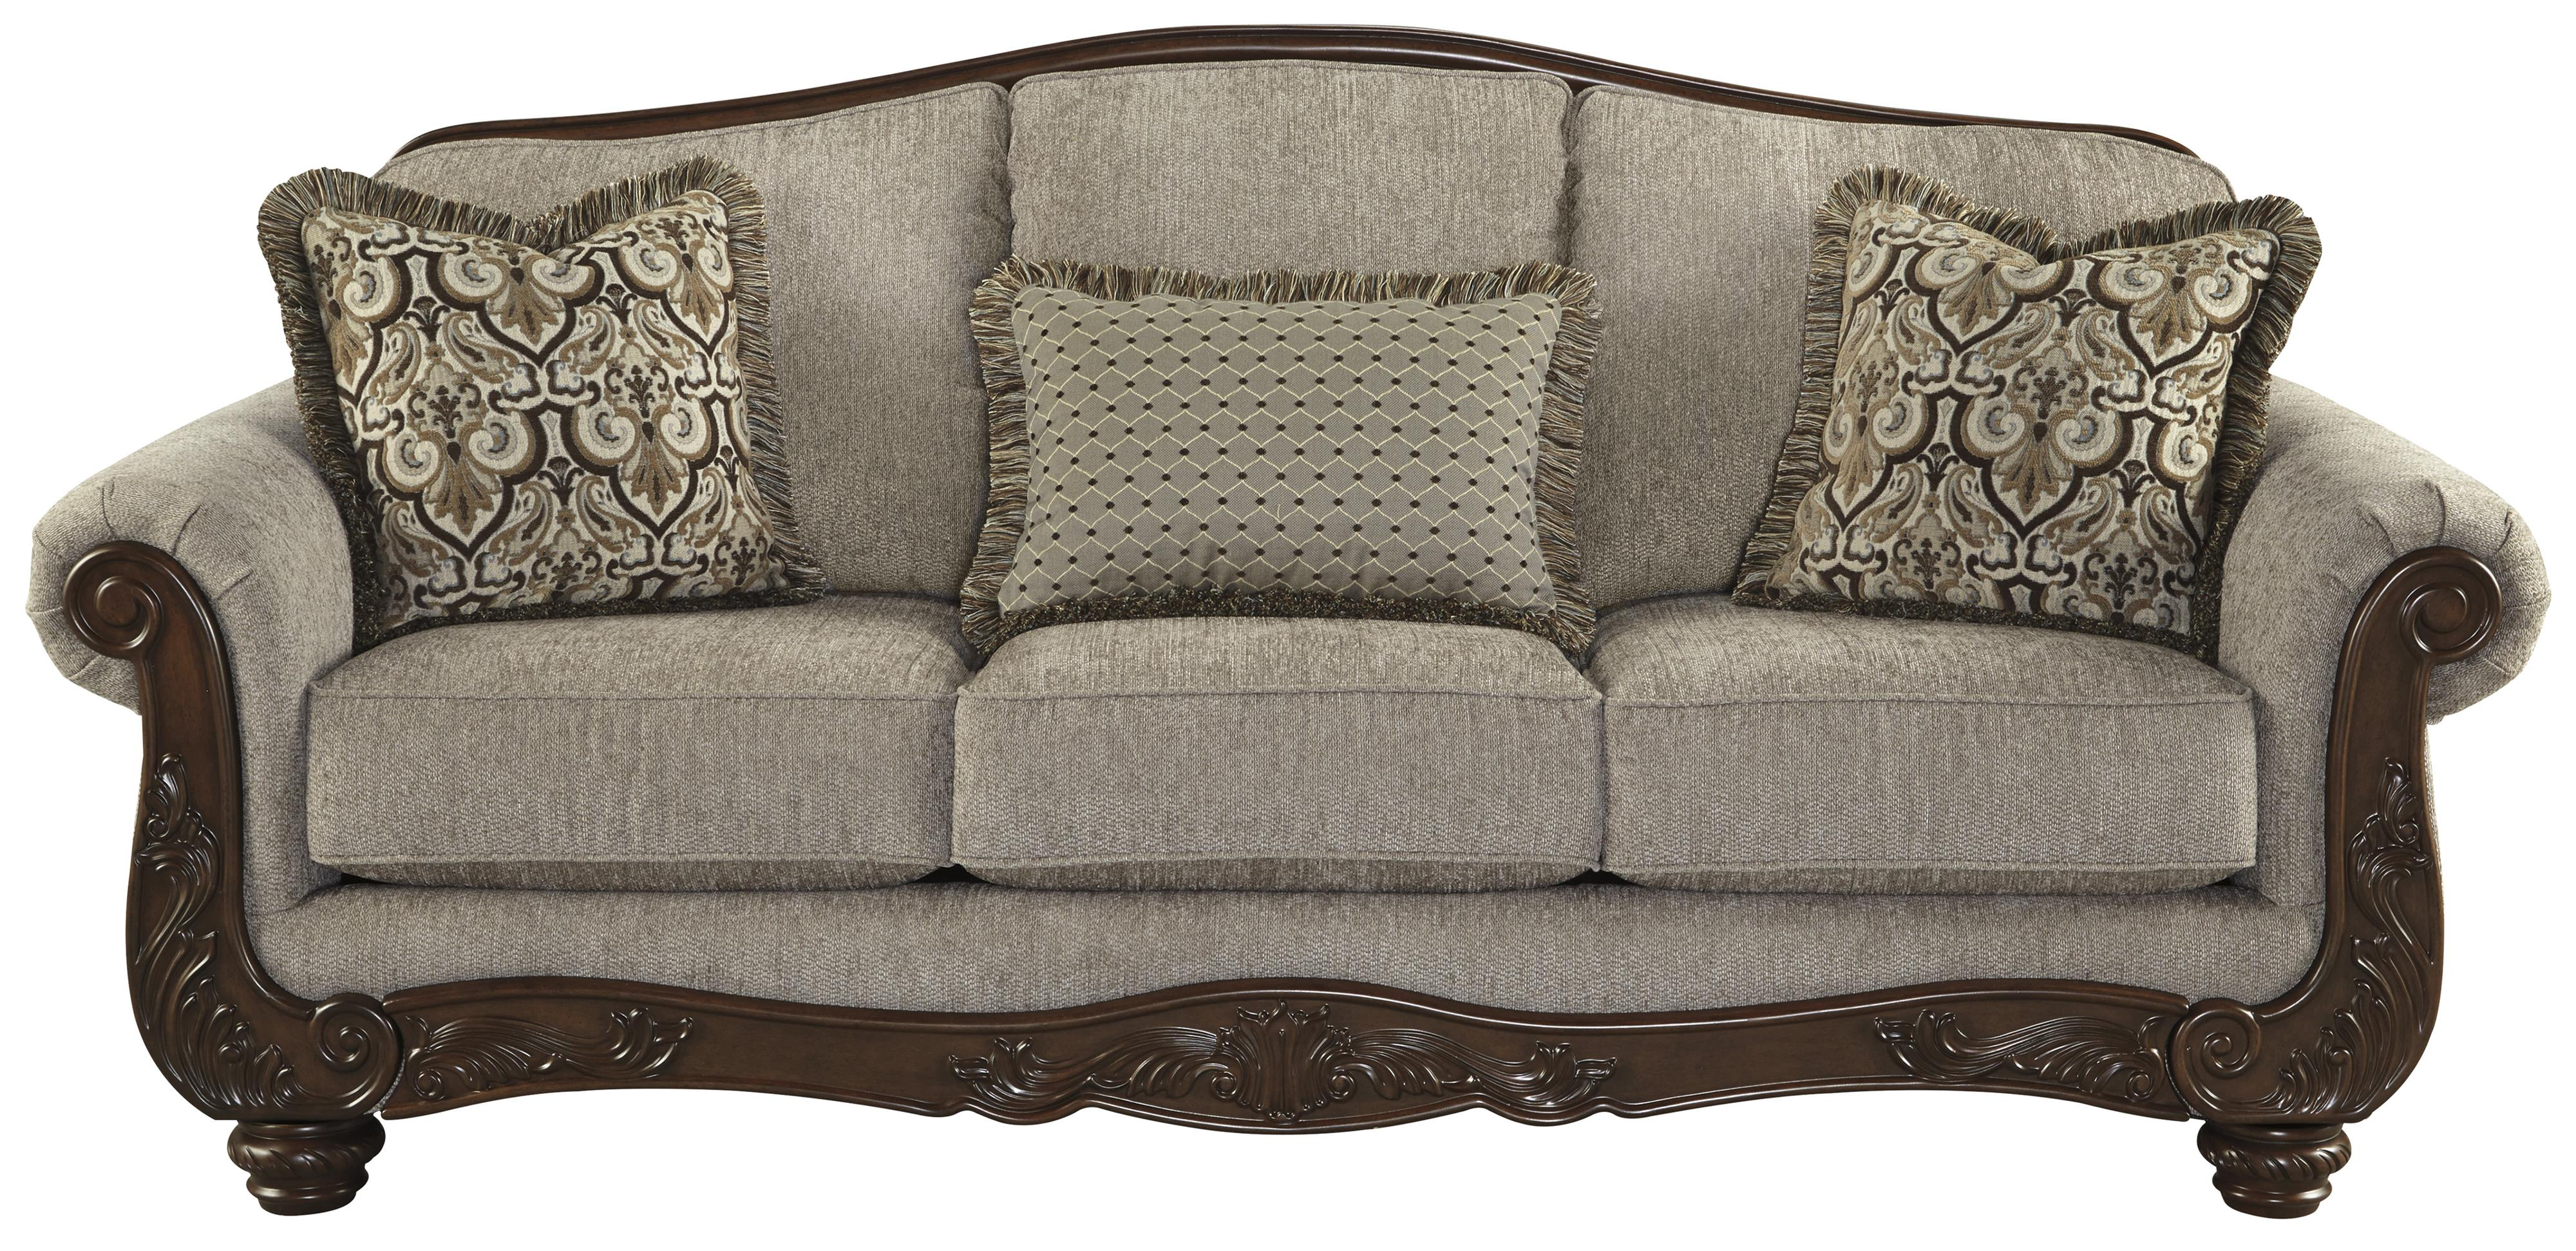 Cecilyn Traditional Sofa with Showood Trim & Camel Back by Signature Design  by Ashley